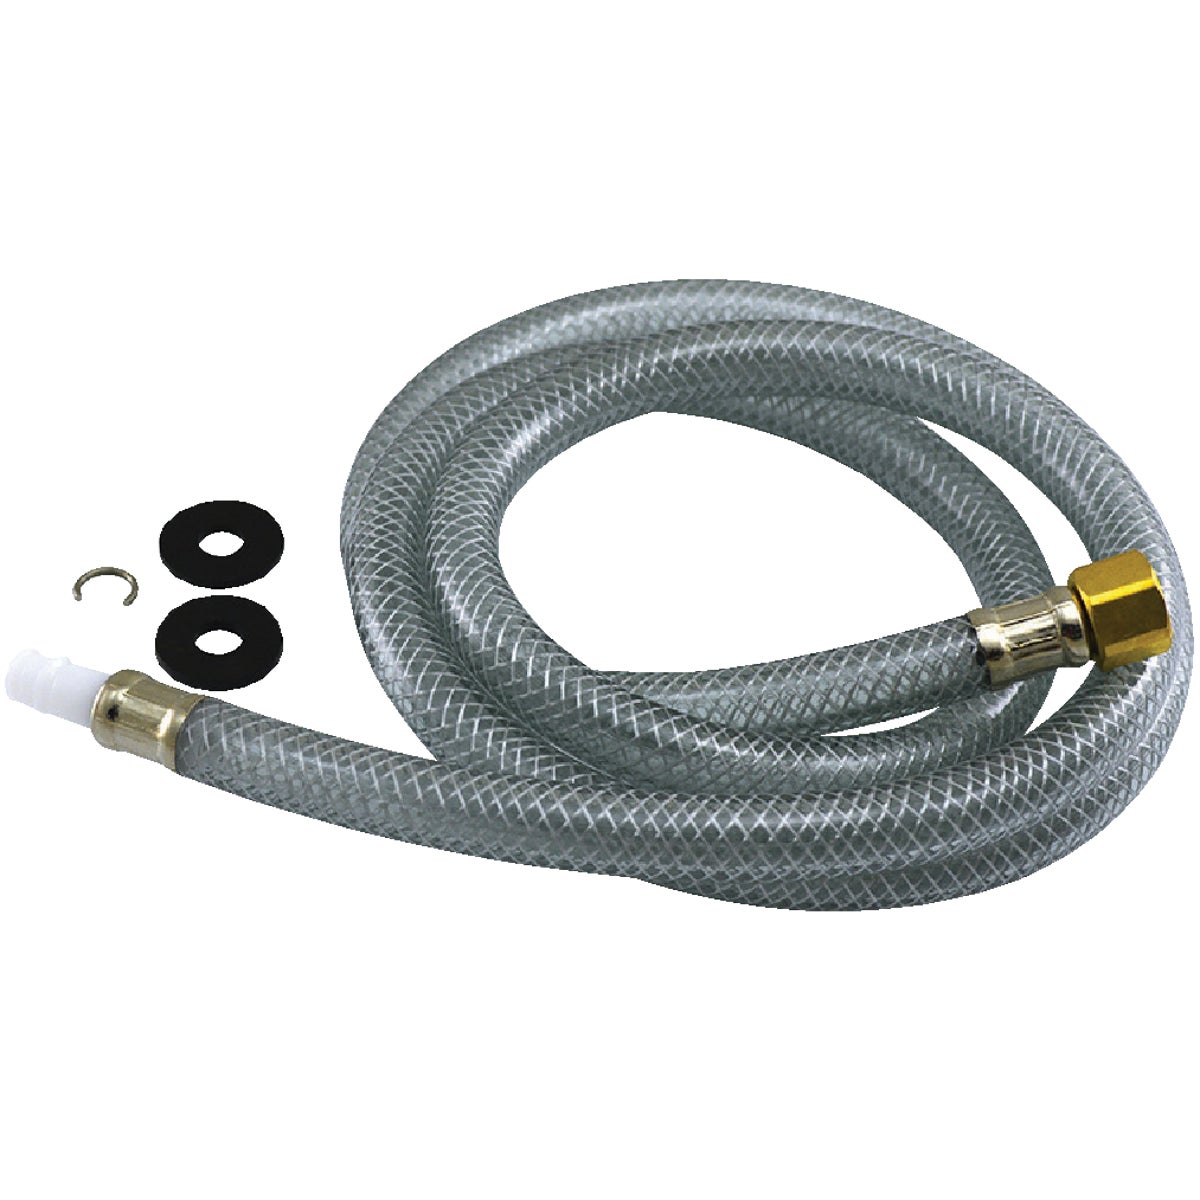 REPLACEMENT DELTA HOSE - K53-007 by Jones Stephens Corp